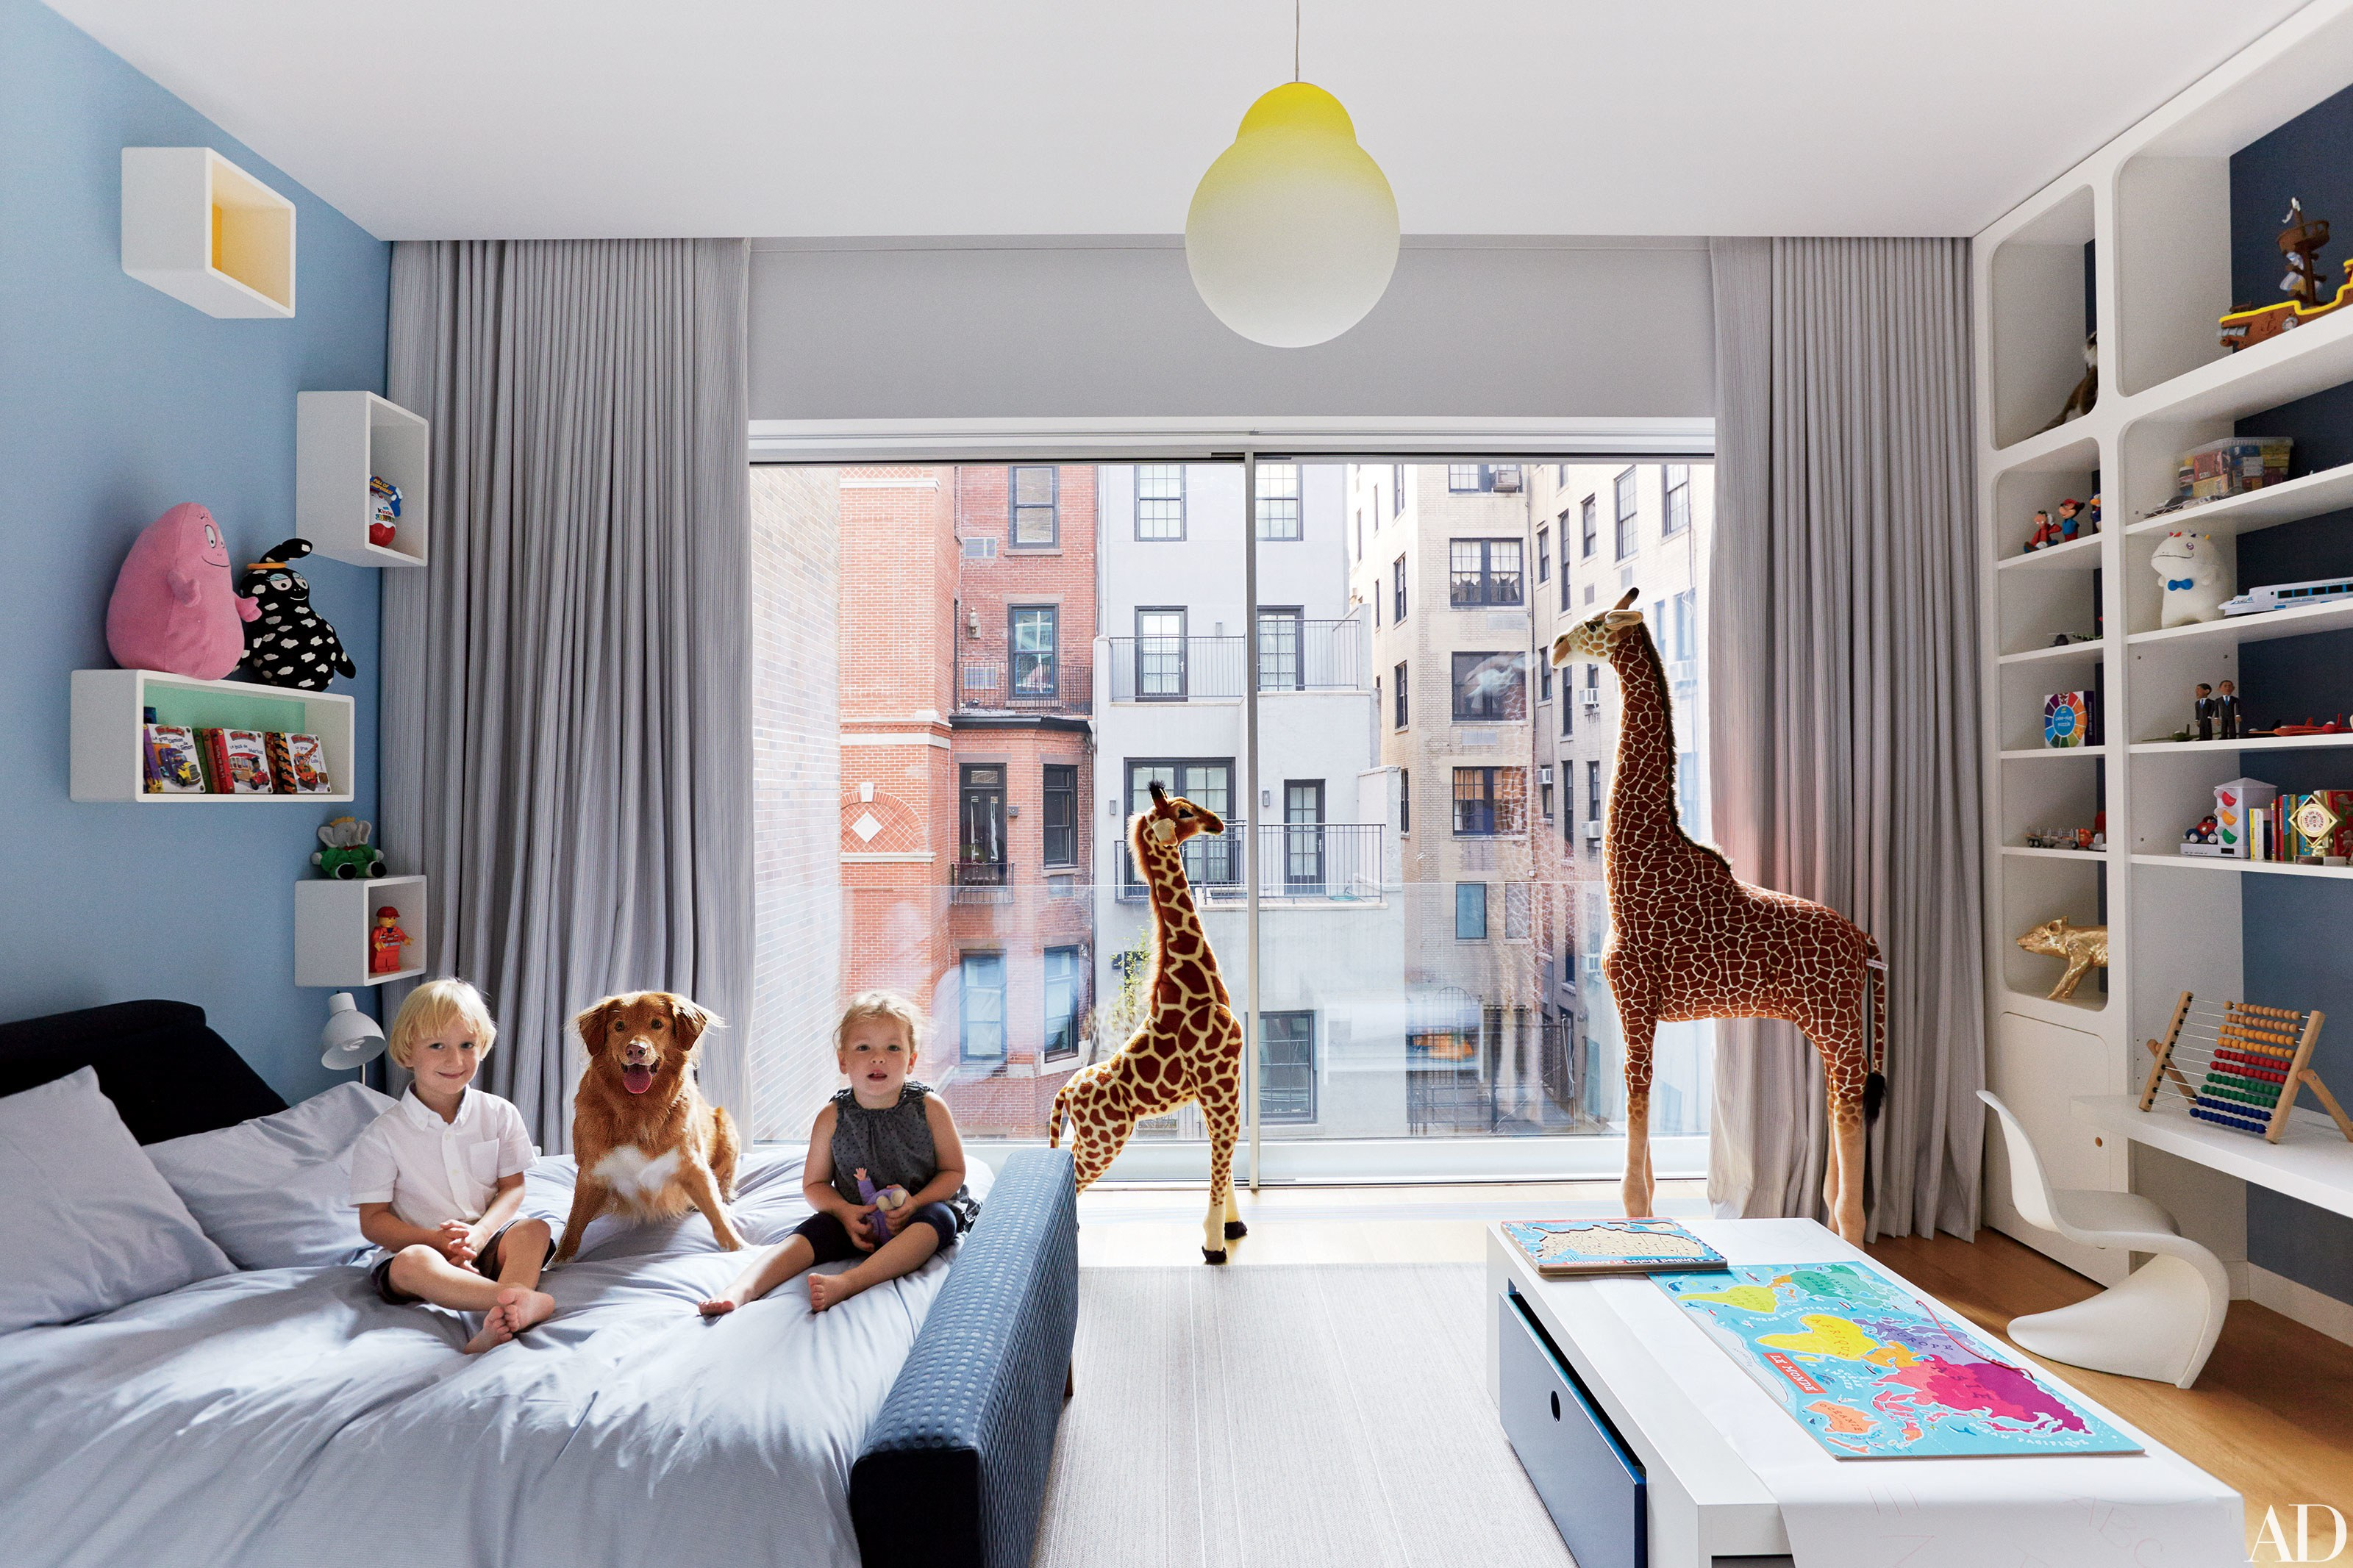 54 stylish kids bedroom u0026 nursery ideas photos | architectural digest OMYNNZG